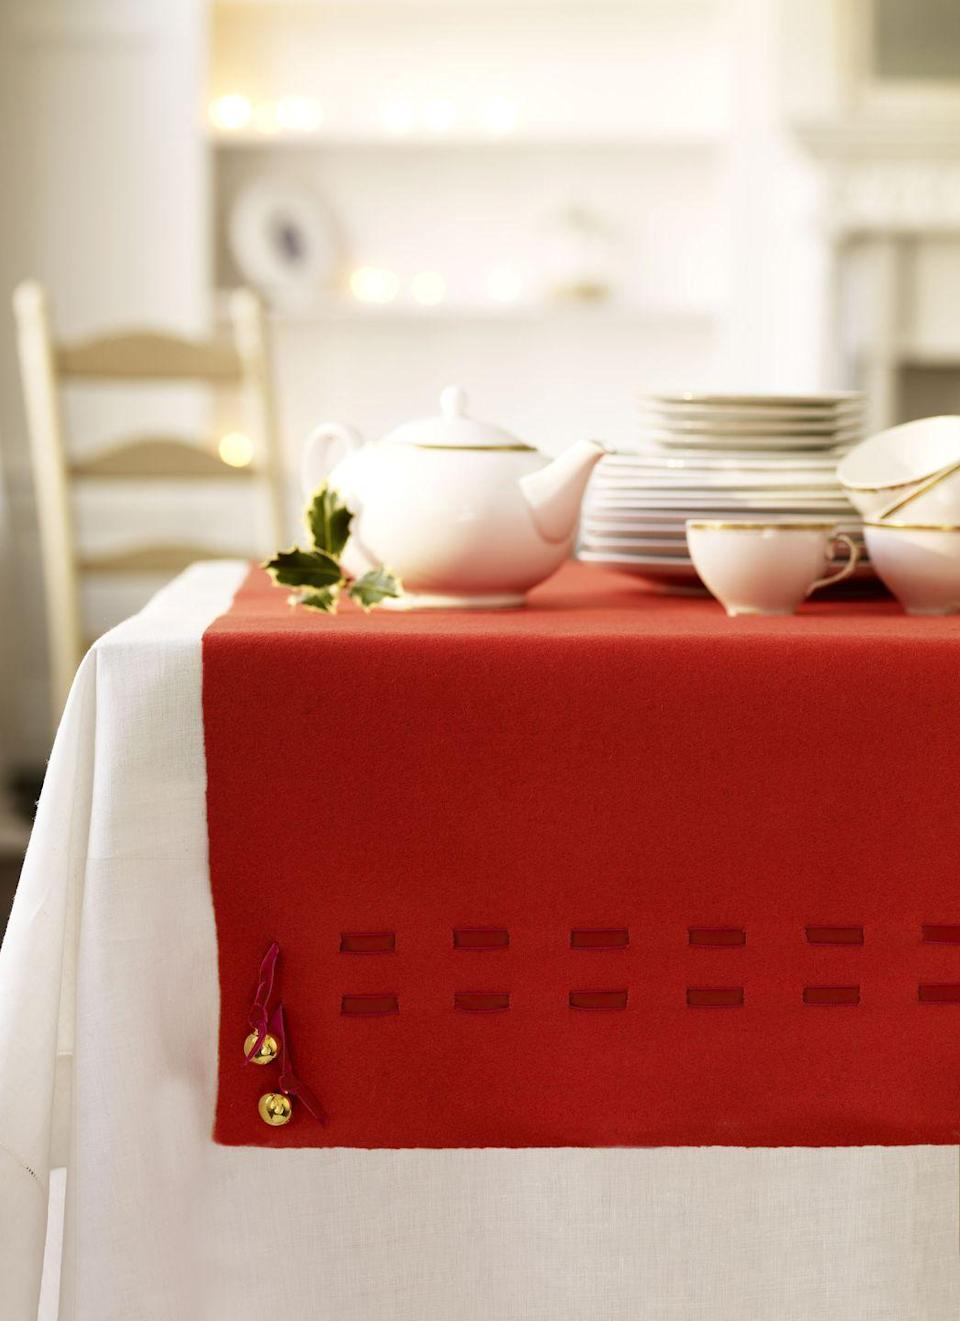 <p>Give pricey table linens a run for their money with this woven ribboned beauty. Start with non-fraying fabric, like felt or heavy wool, that's sized as a runner for your table. Four inches up from the runner's bottom and 3 inches in from the edge, cut a 1⁄2-inch pair of parallel vertical slits 2 inches apart. Make another pair of vertical cuts 3 inches away from the first set of slits. Repeat along the width of the runner. Thread a 1⁄2-inch velvet ribbon through the slits. Punch a hole through fabric to insert the end of the ribbon. Tie bells onto the end of the ribbon for a jingly finish.<br> </p>